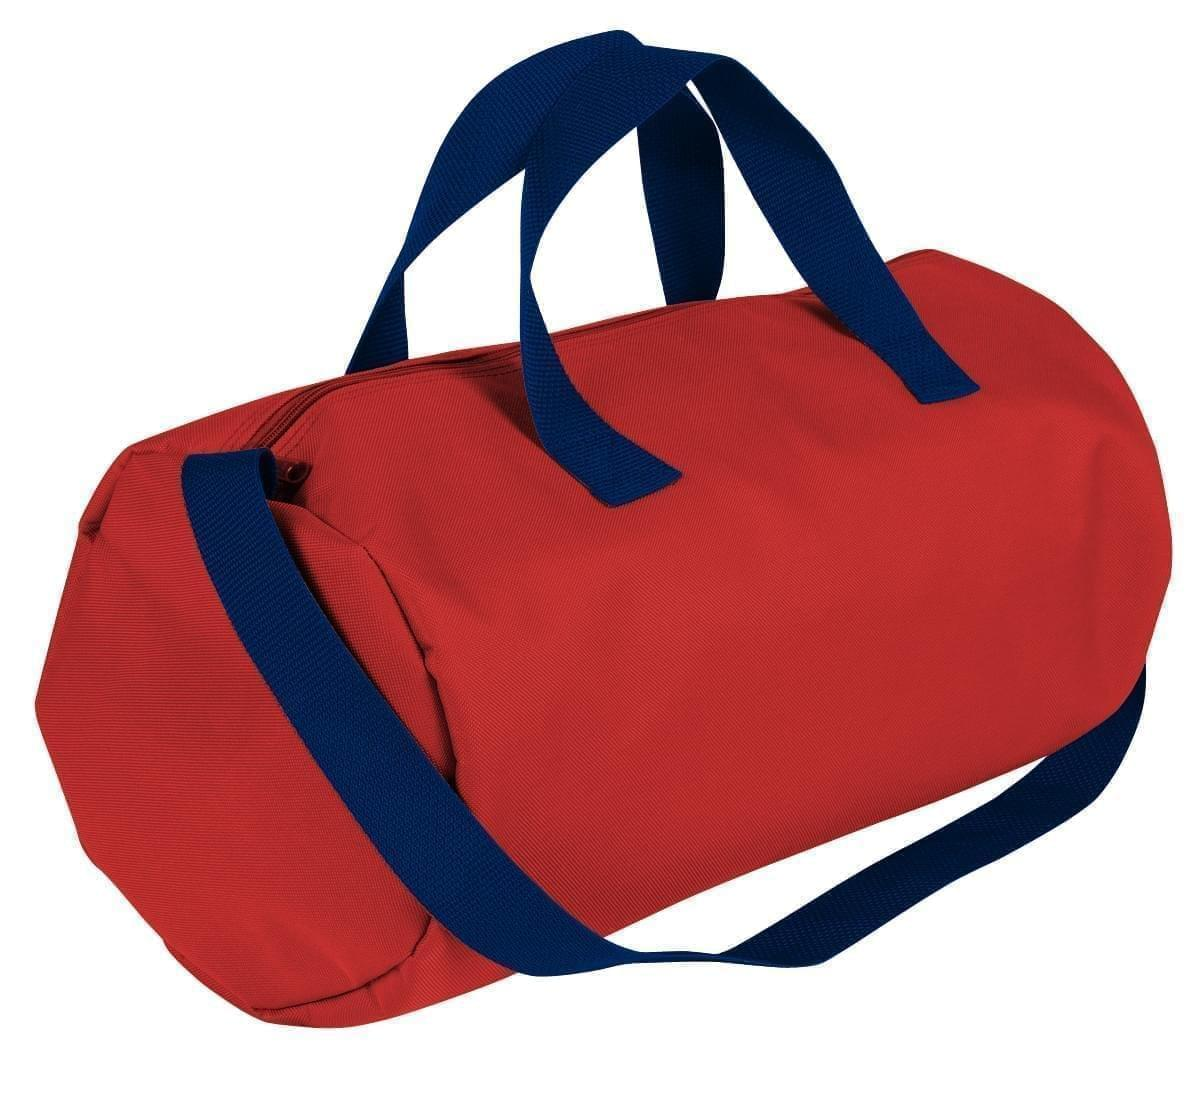 USA Made Nylon Poly Gym Roll Bags, Red-Navy, ROCX31AAZZ